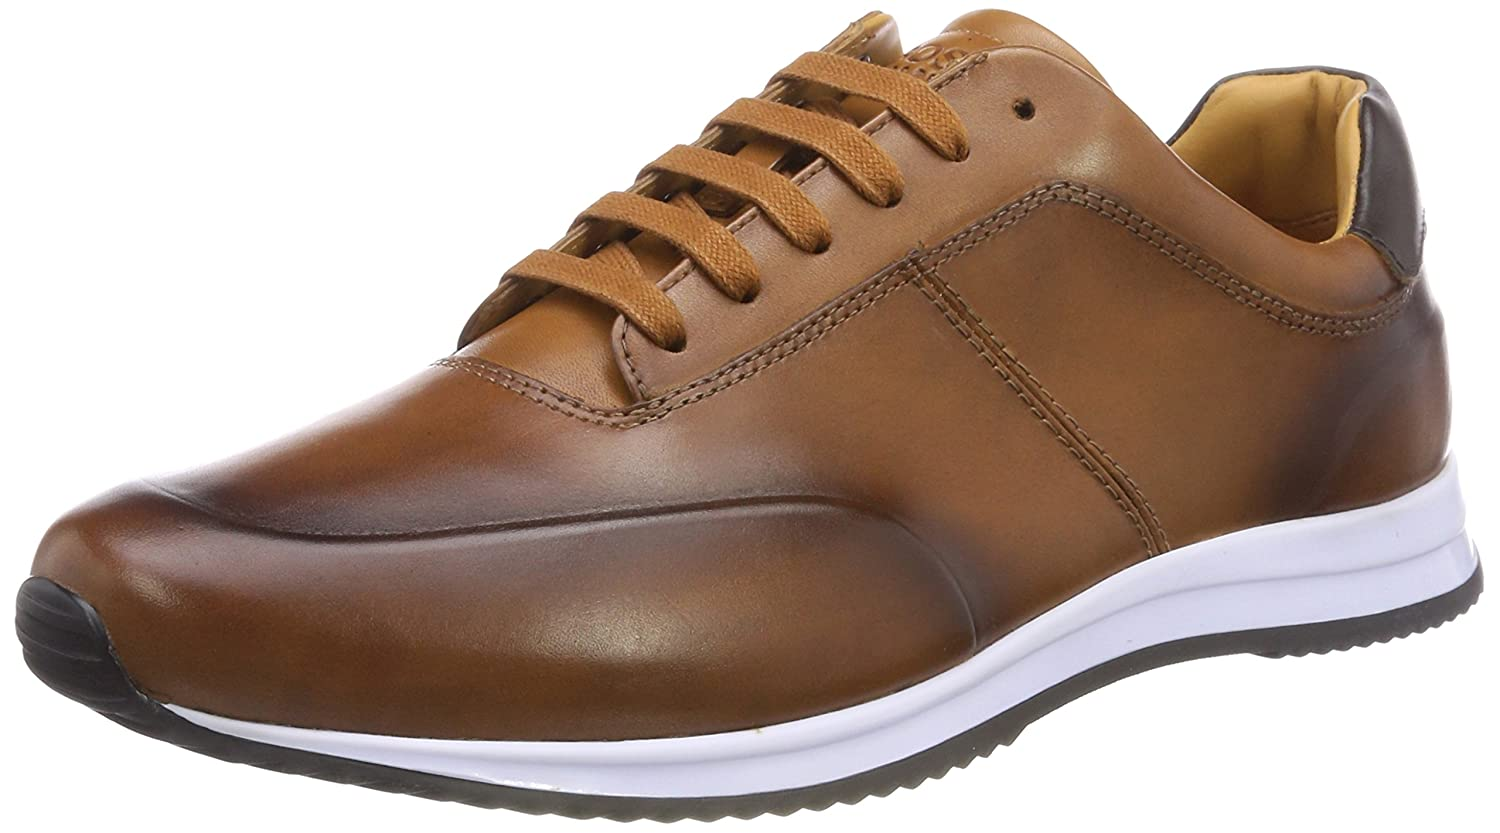 Boss Legacy_Runn_Burs, Zapatillas para Hombre 41 EU|Marrón (Medium Brown 210)